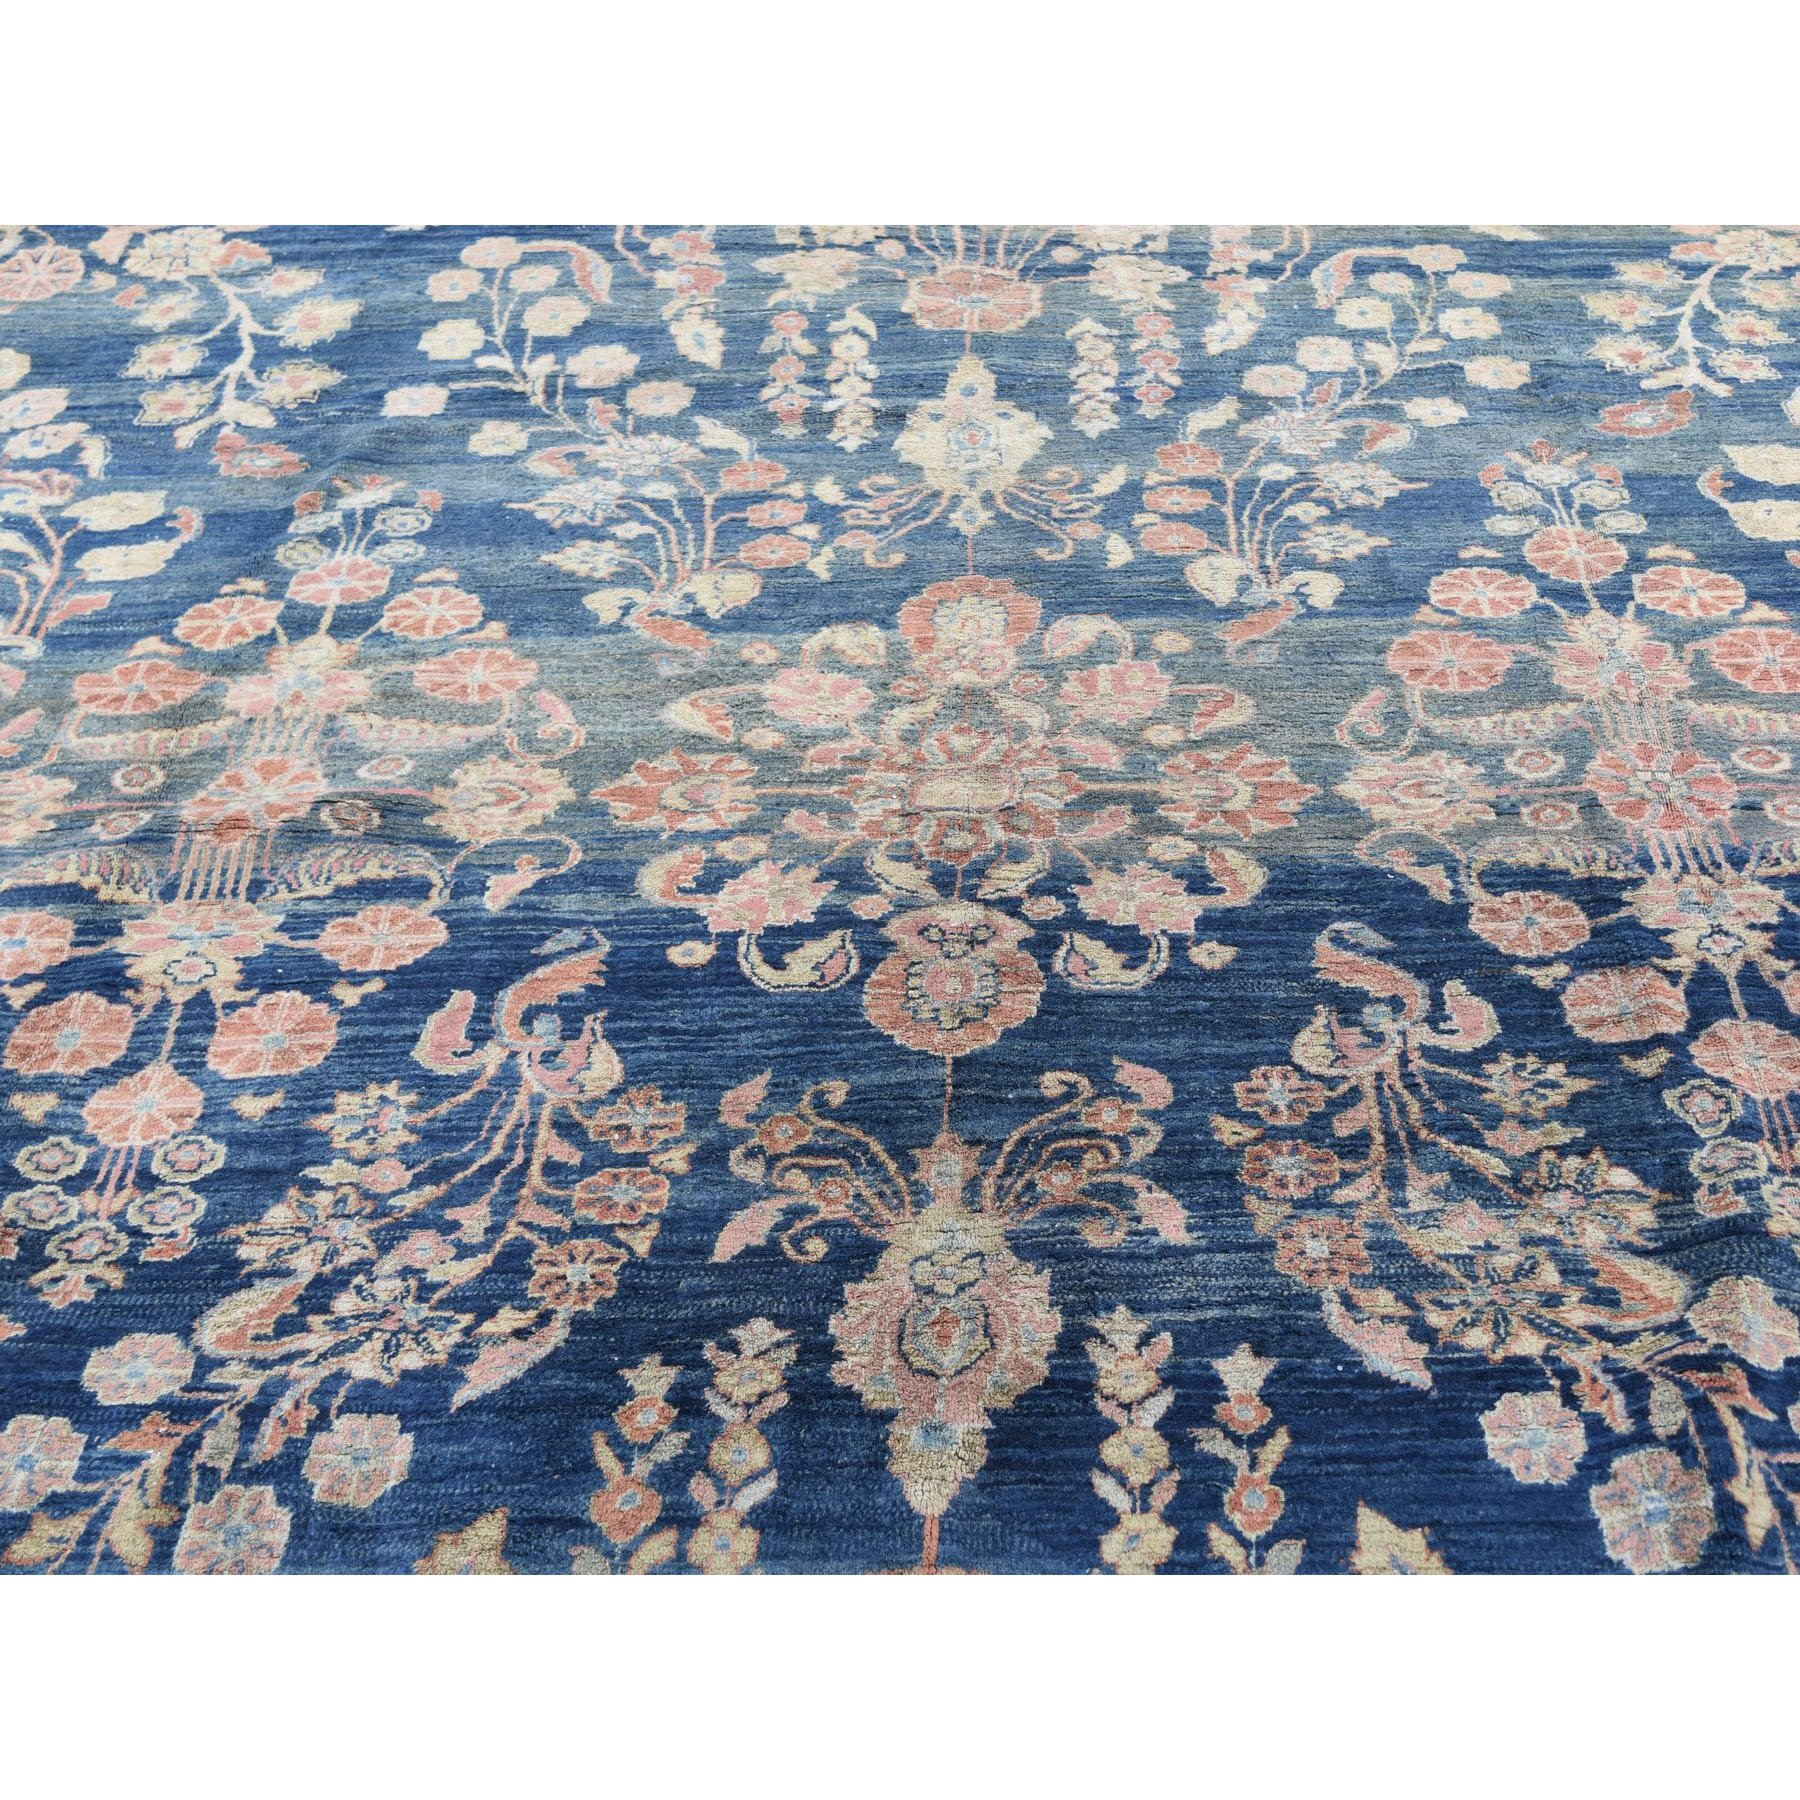 10-7 x14-10  Blue Antique Persian Mohojaren Sarouk Full Soft Pile Abrush Hand Knotted Oriental Rug